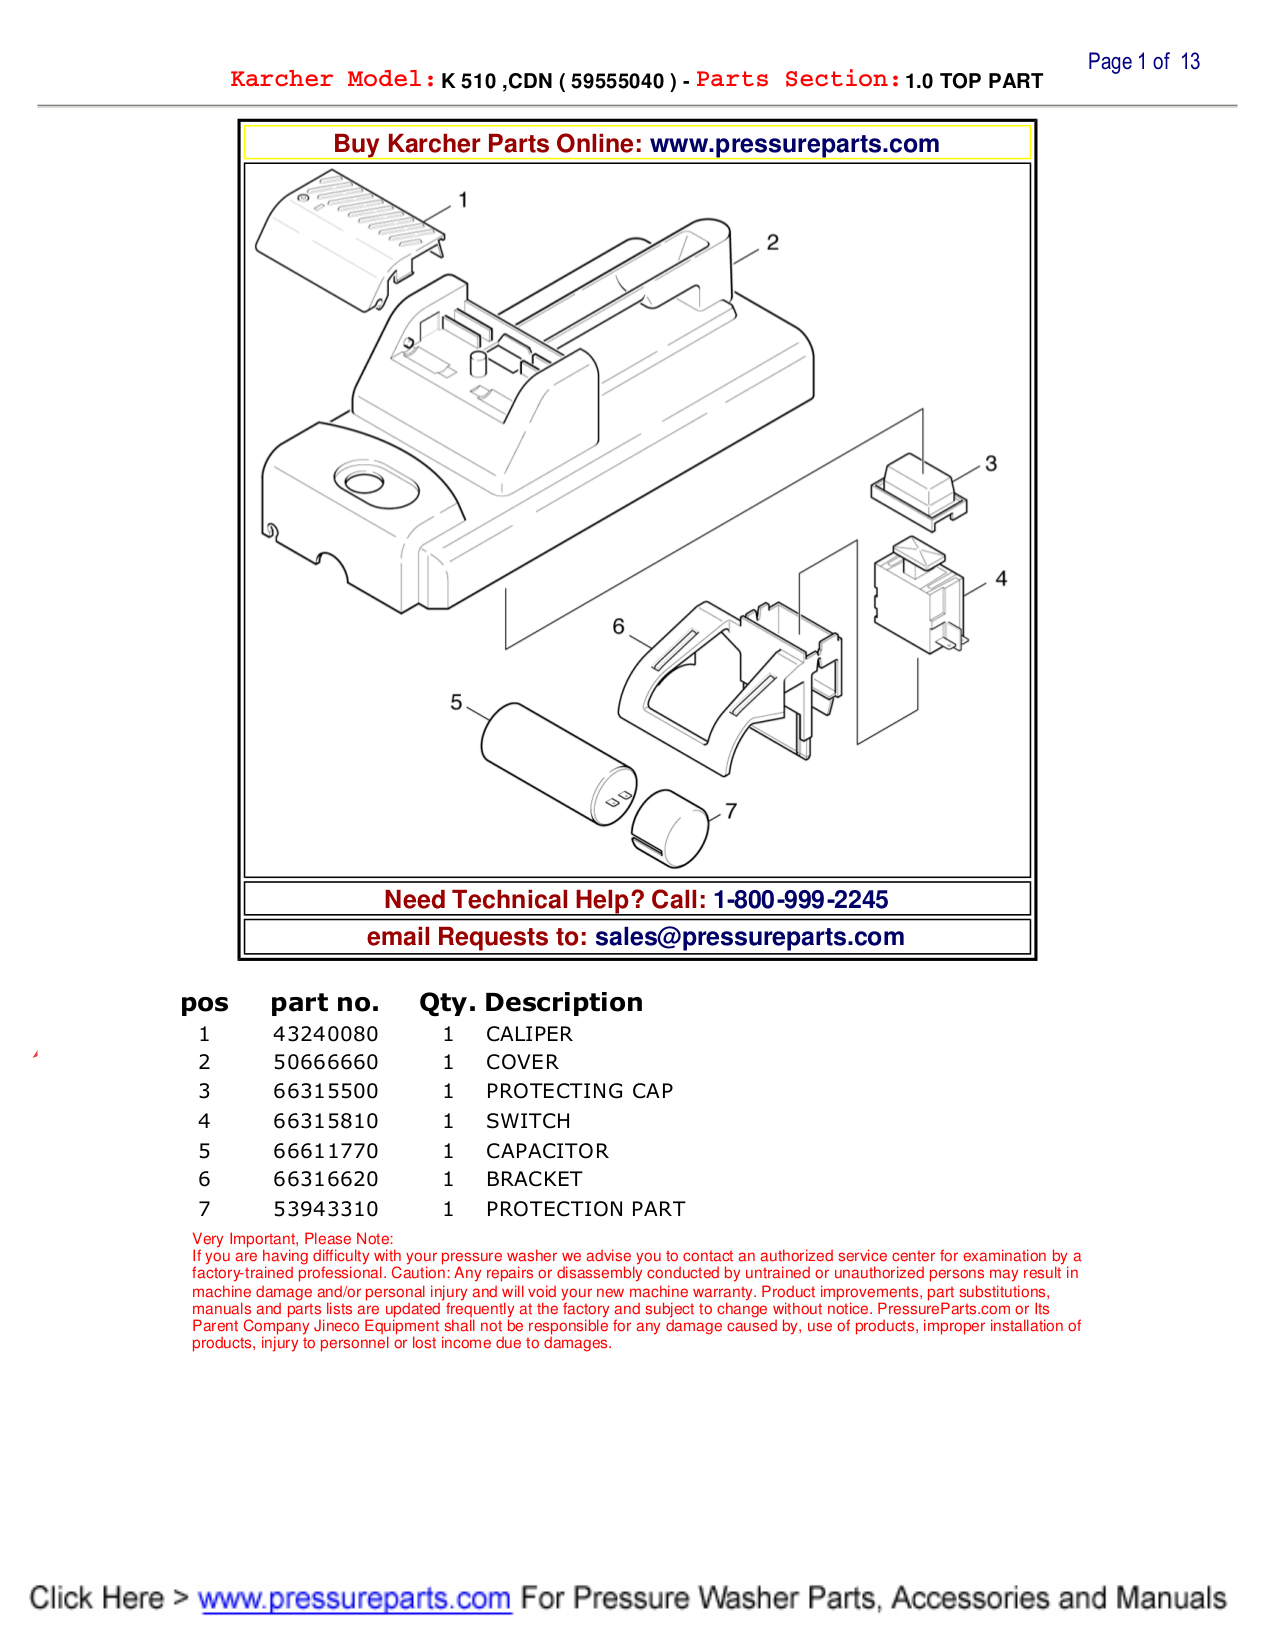 Washer Repair: Karcher Pressure Washer Repair Manual